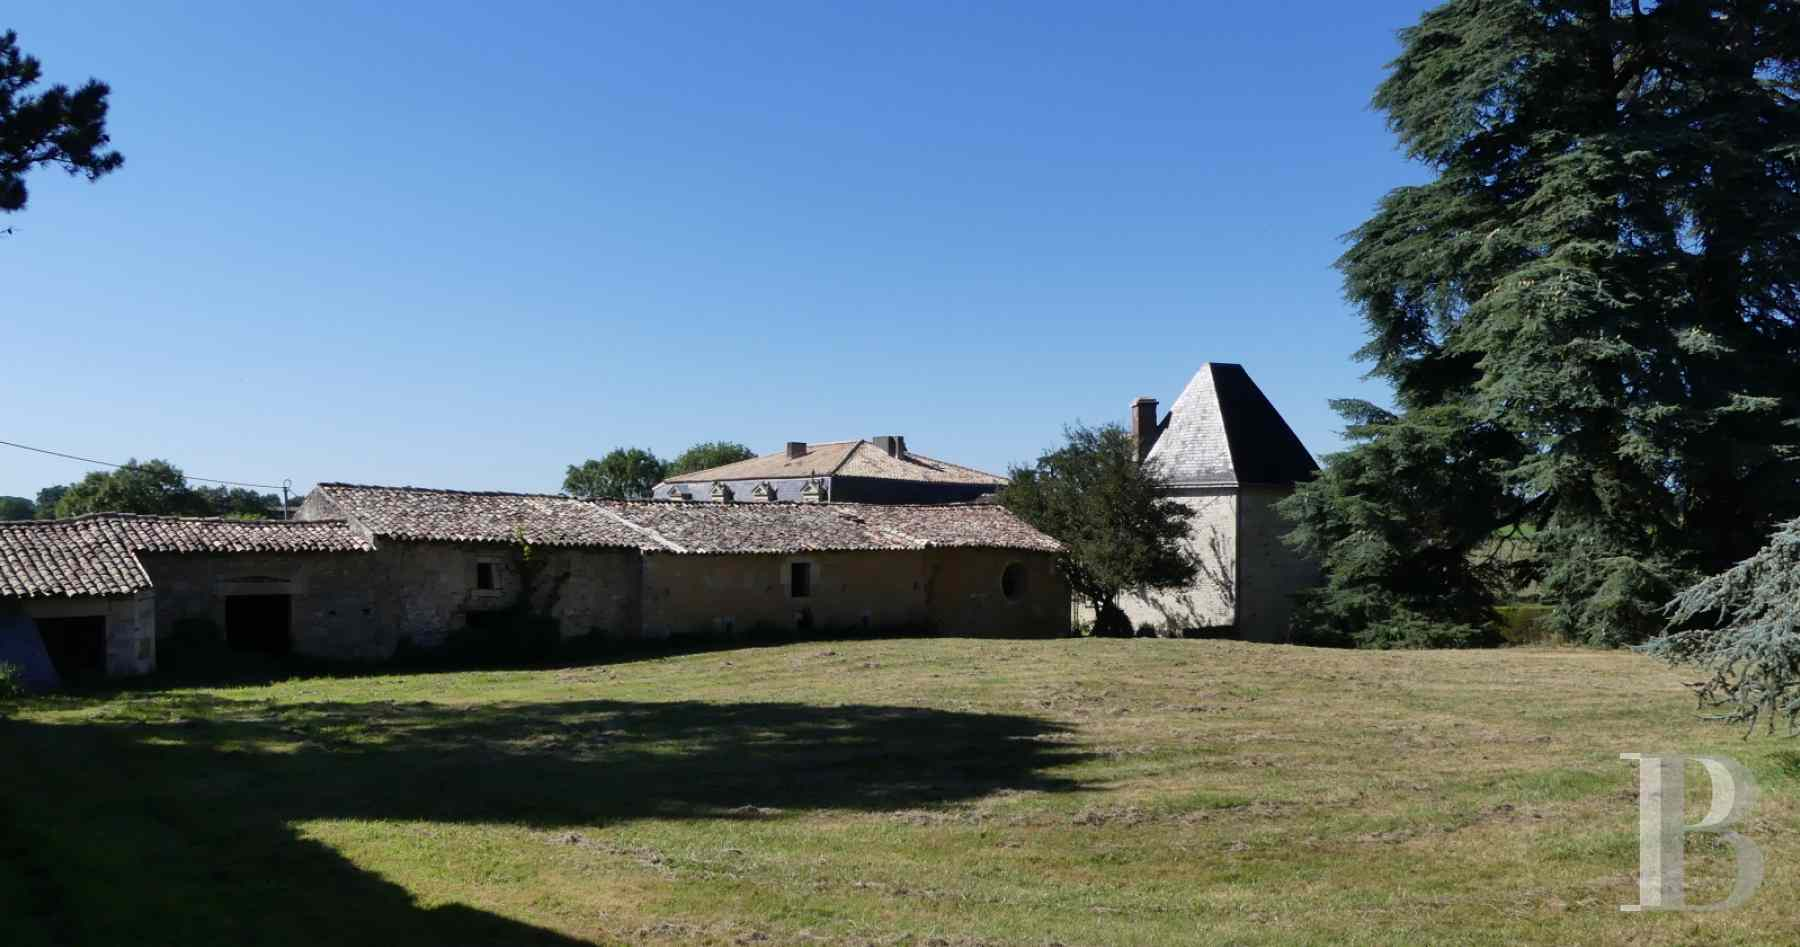 France mansions for sale poitou charentes 18th century - 14 zoom